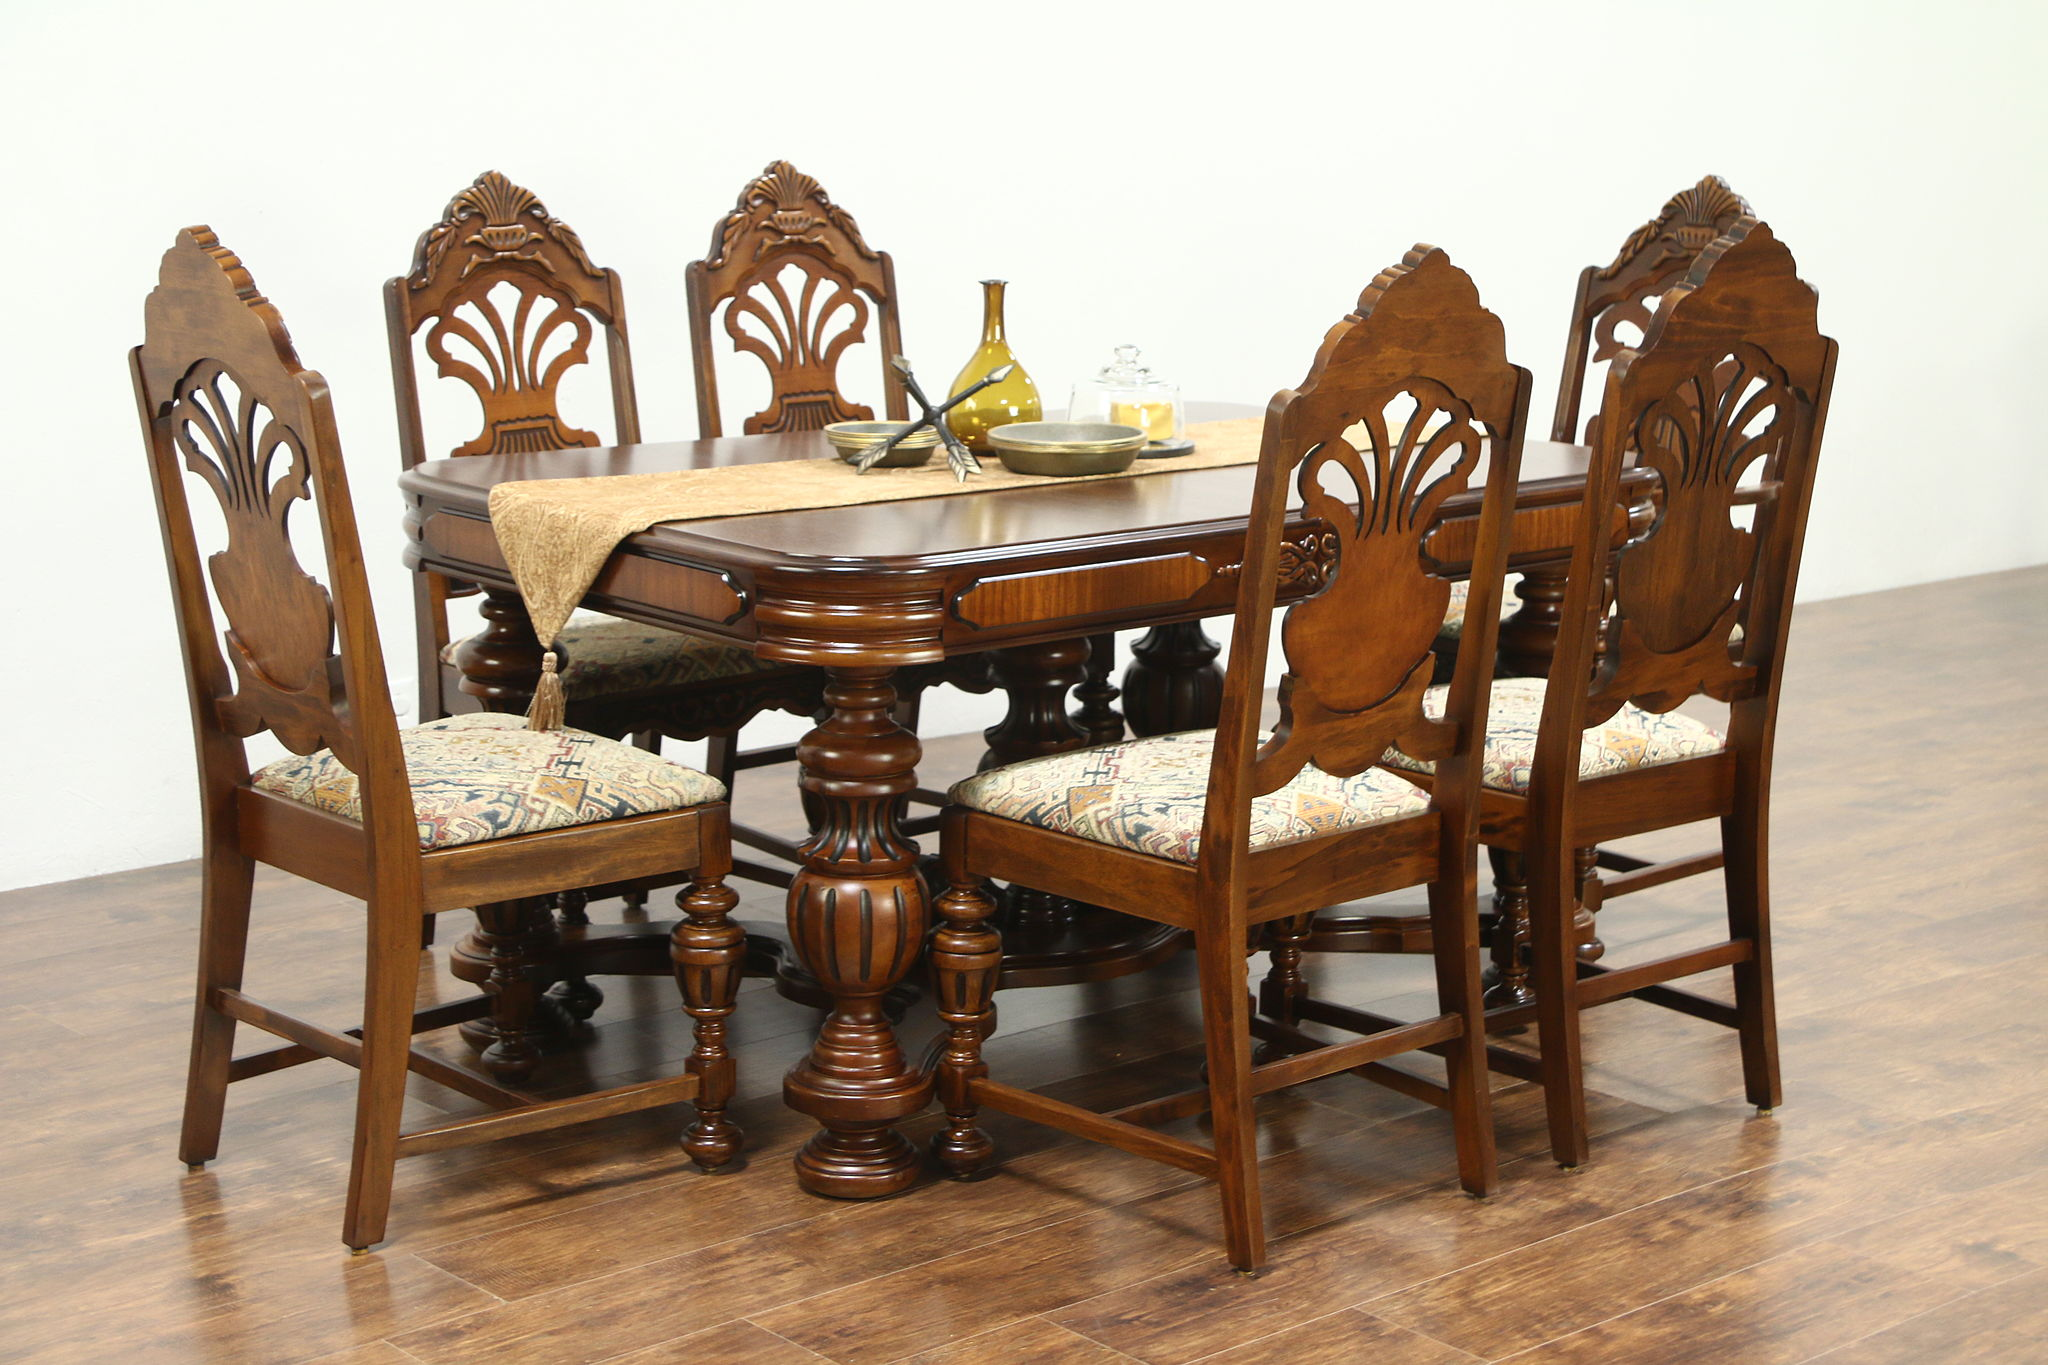 English Tudor Style 1925 Antique Carved Dining Set, Table, Leaf U0026 6 Chairs